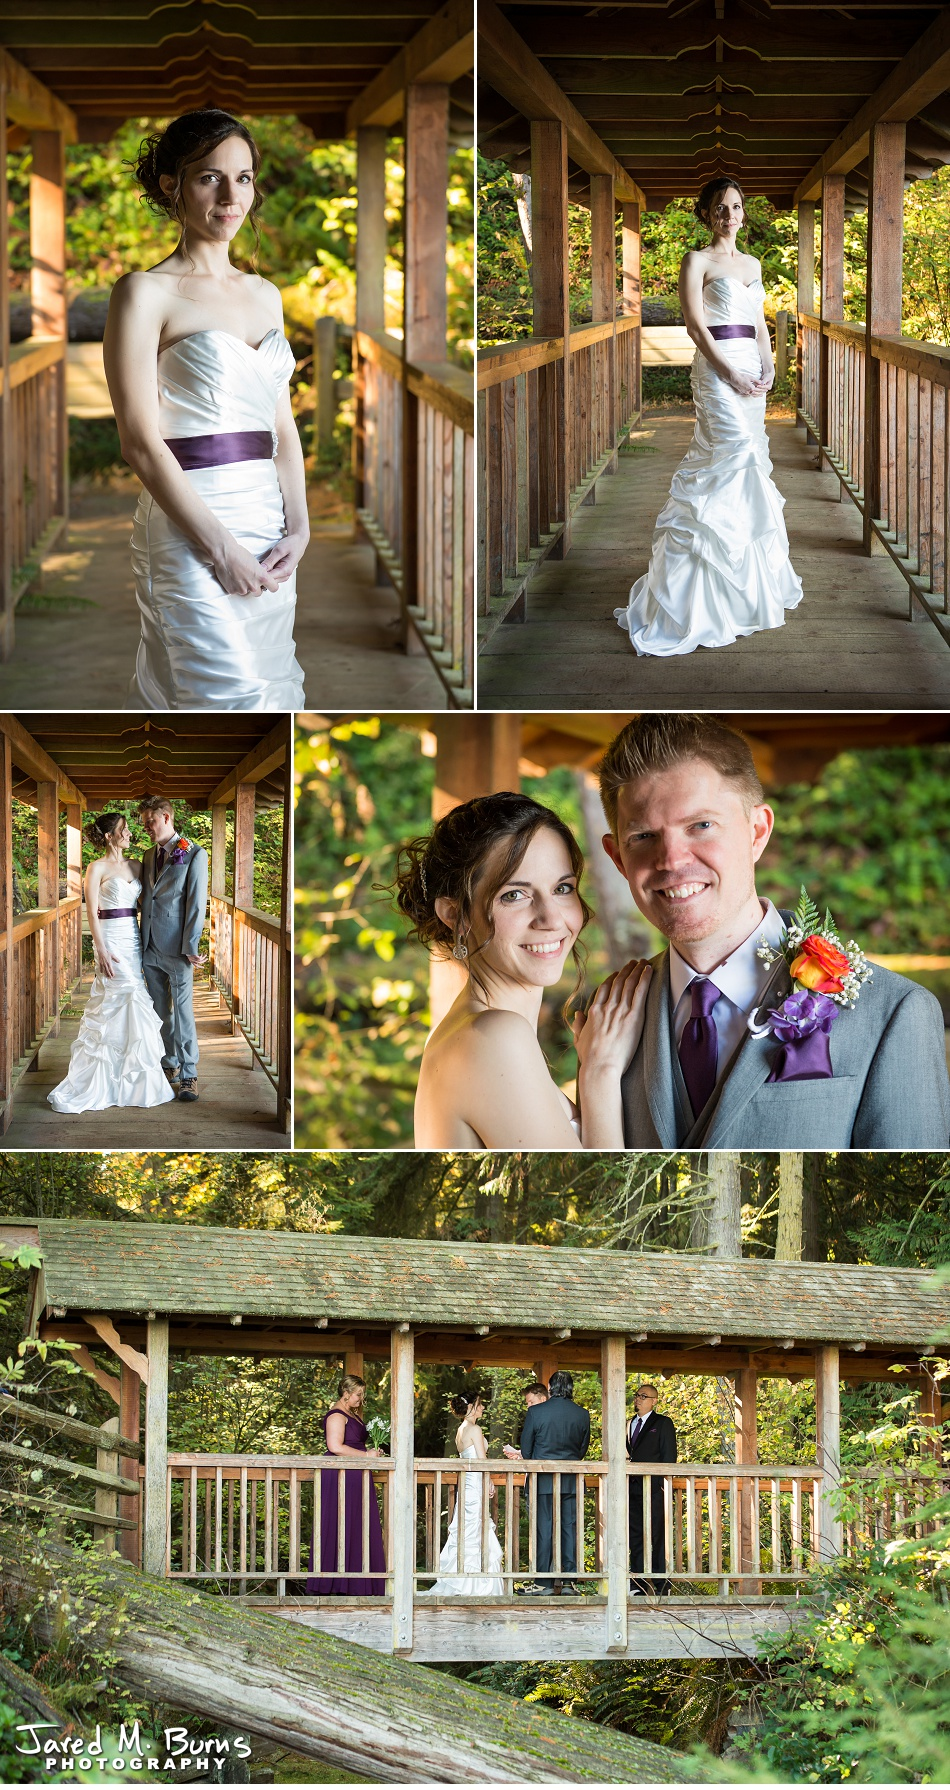 Kyle & Stephanie - Echo Falls and Washington Ferry Wedding Photographer - Jared M. Burns Photography 3